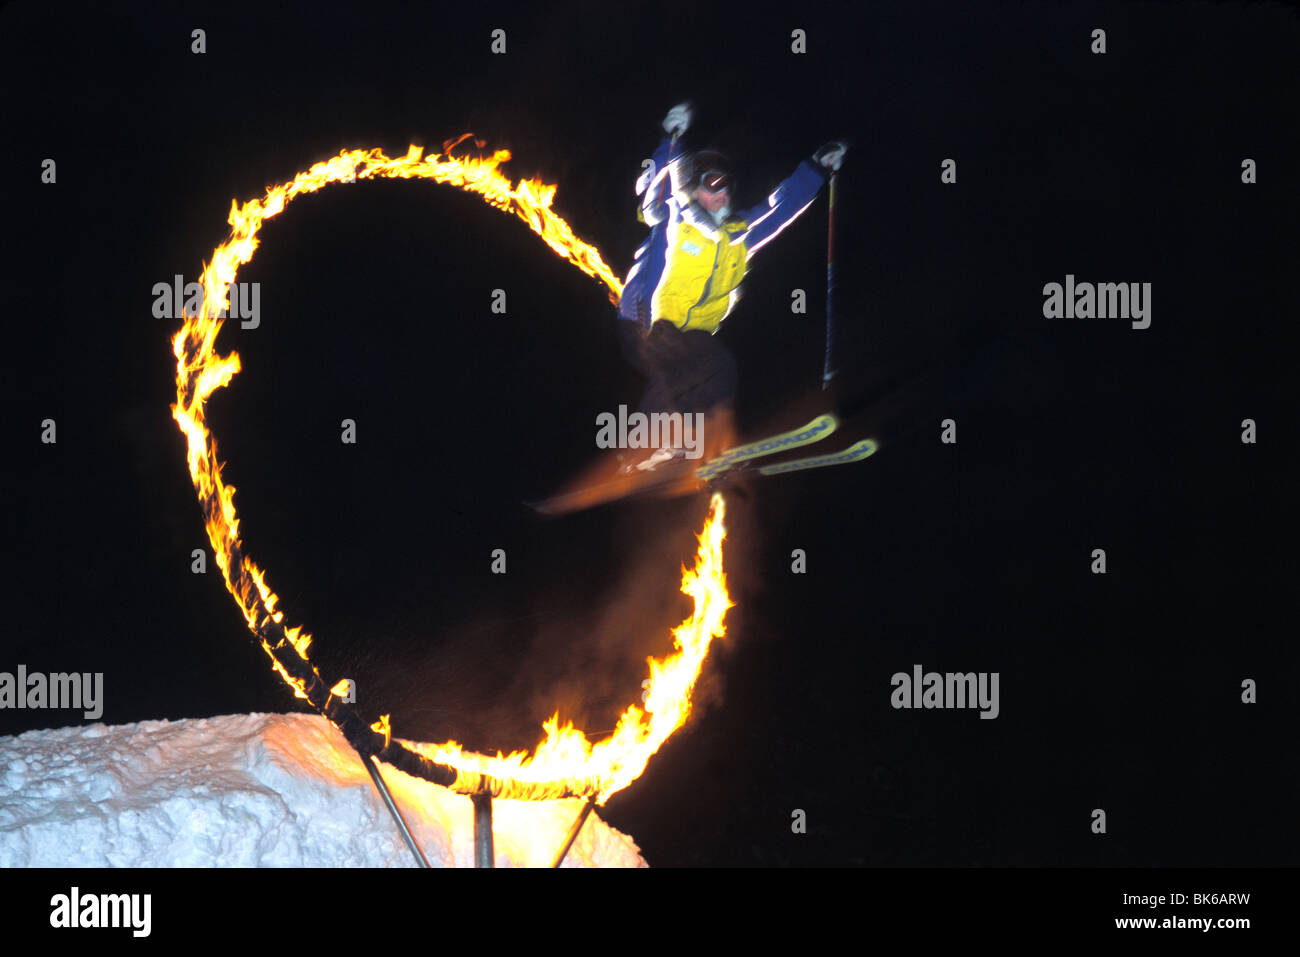 snow skier jumps through ring of fire at night - Stock Image